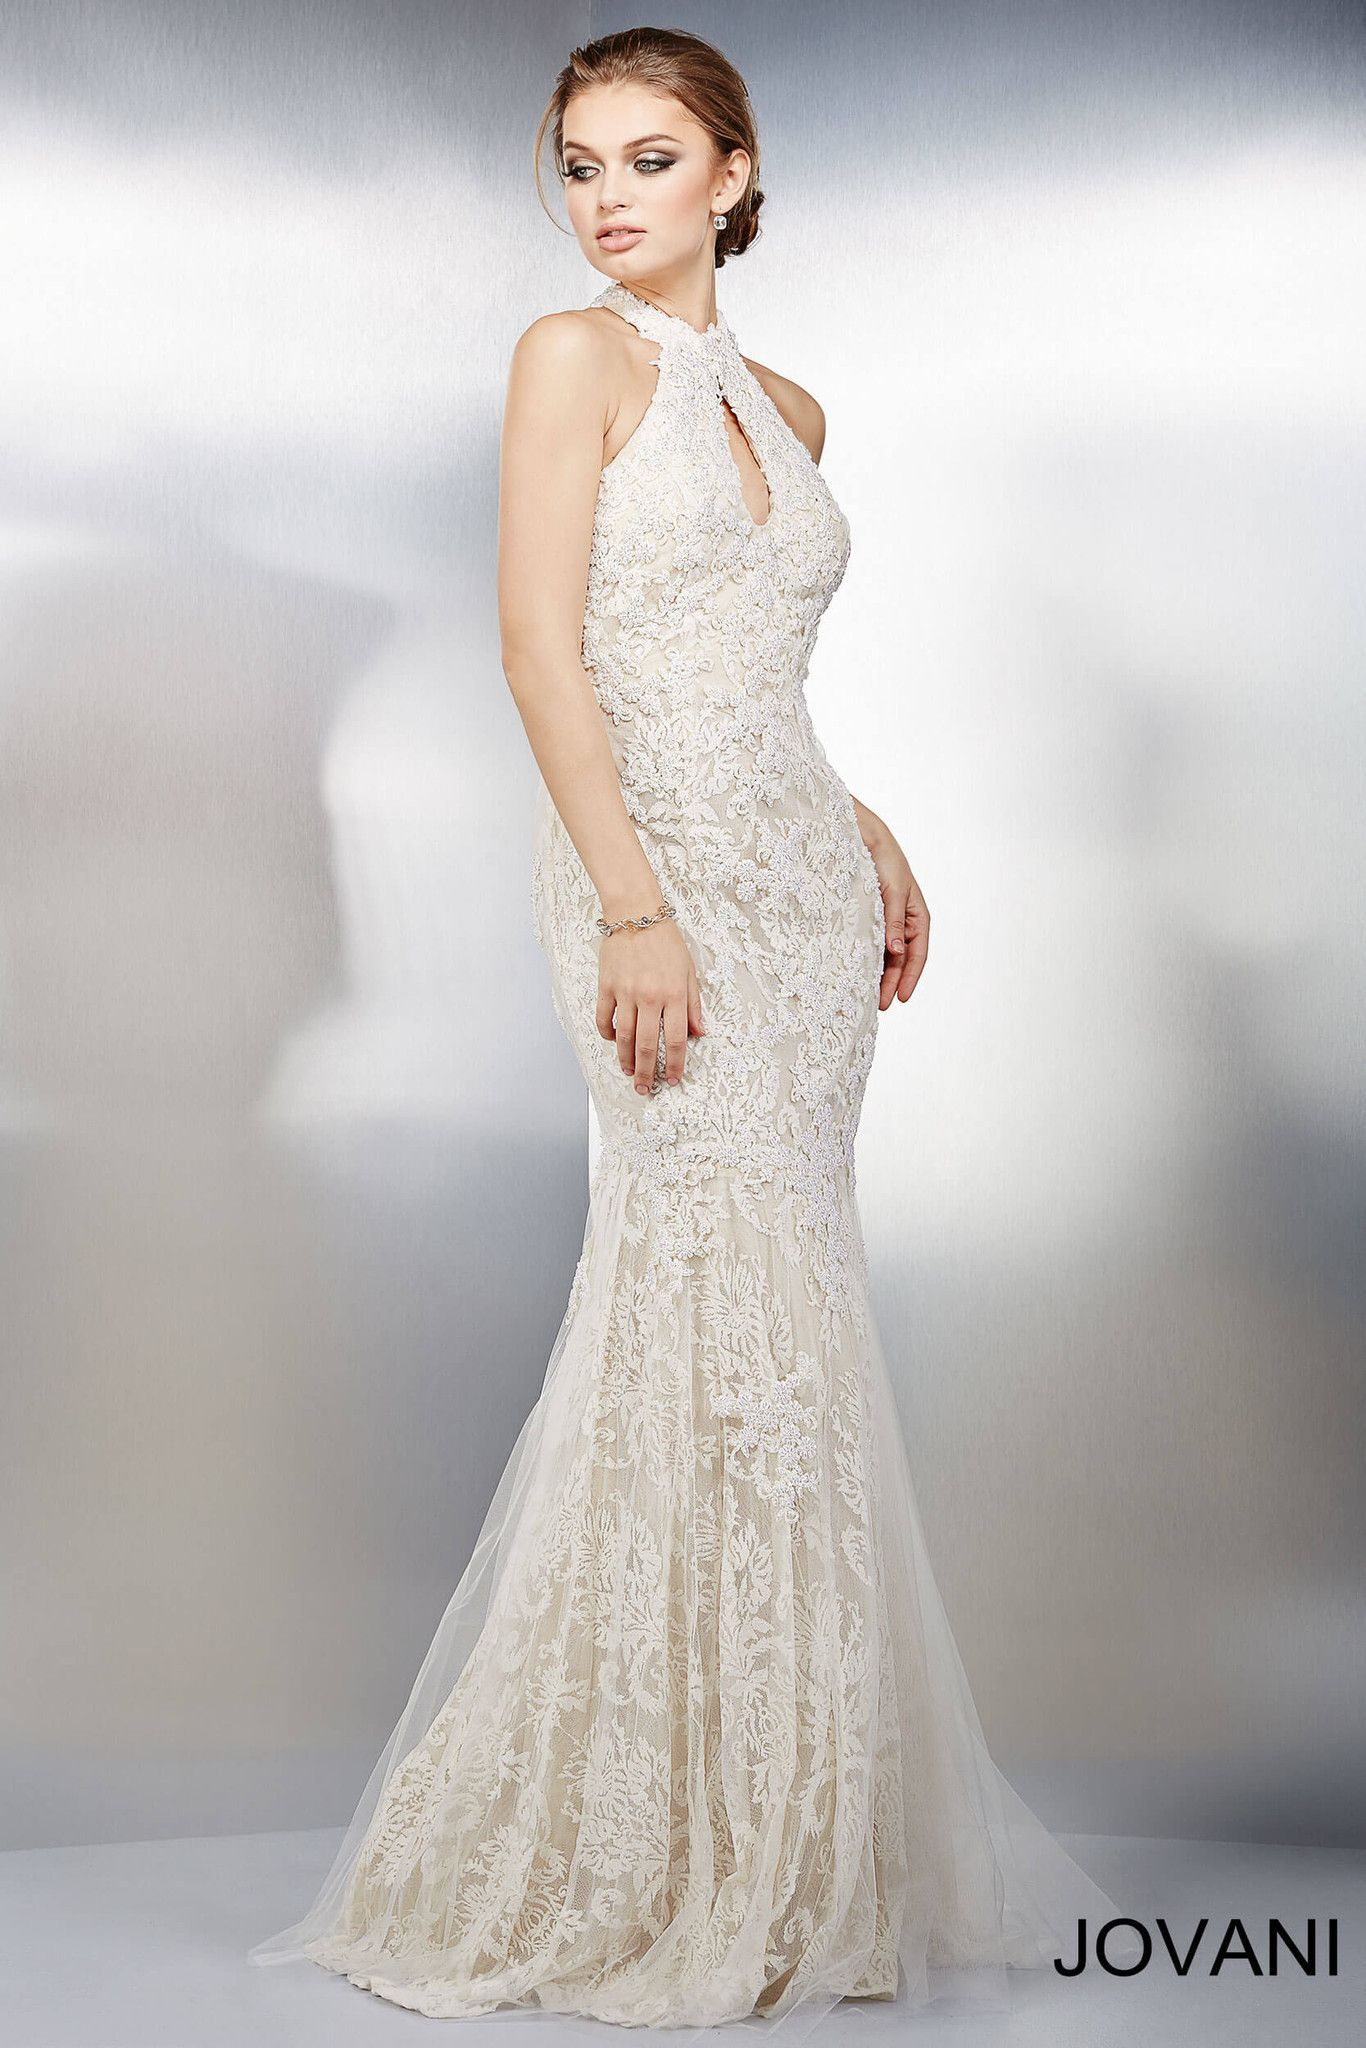 Lace halter wedding dress  Jovani  Ivory Nude Lace Halter Bridal Evening Prom Dress